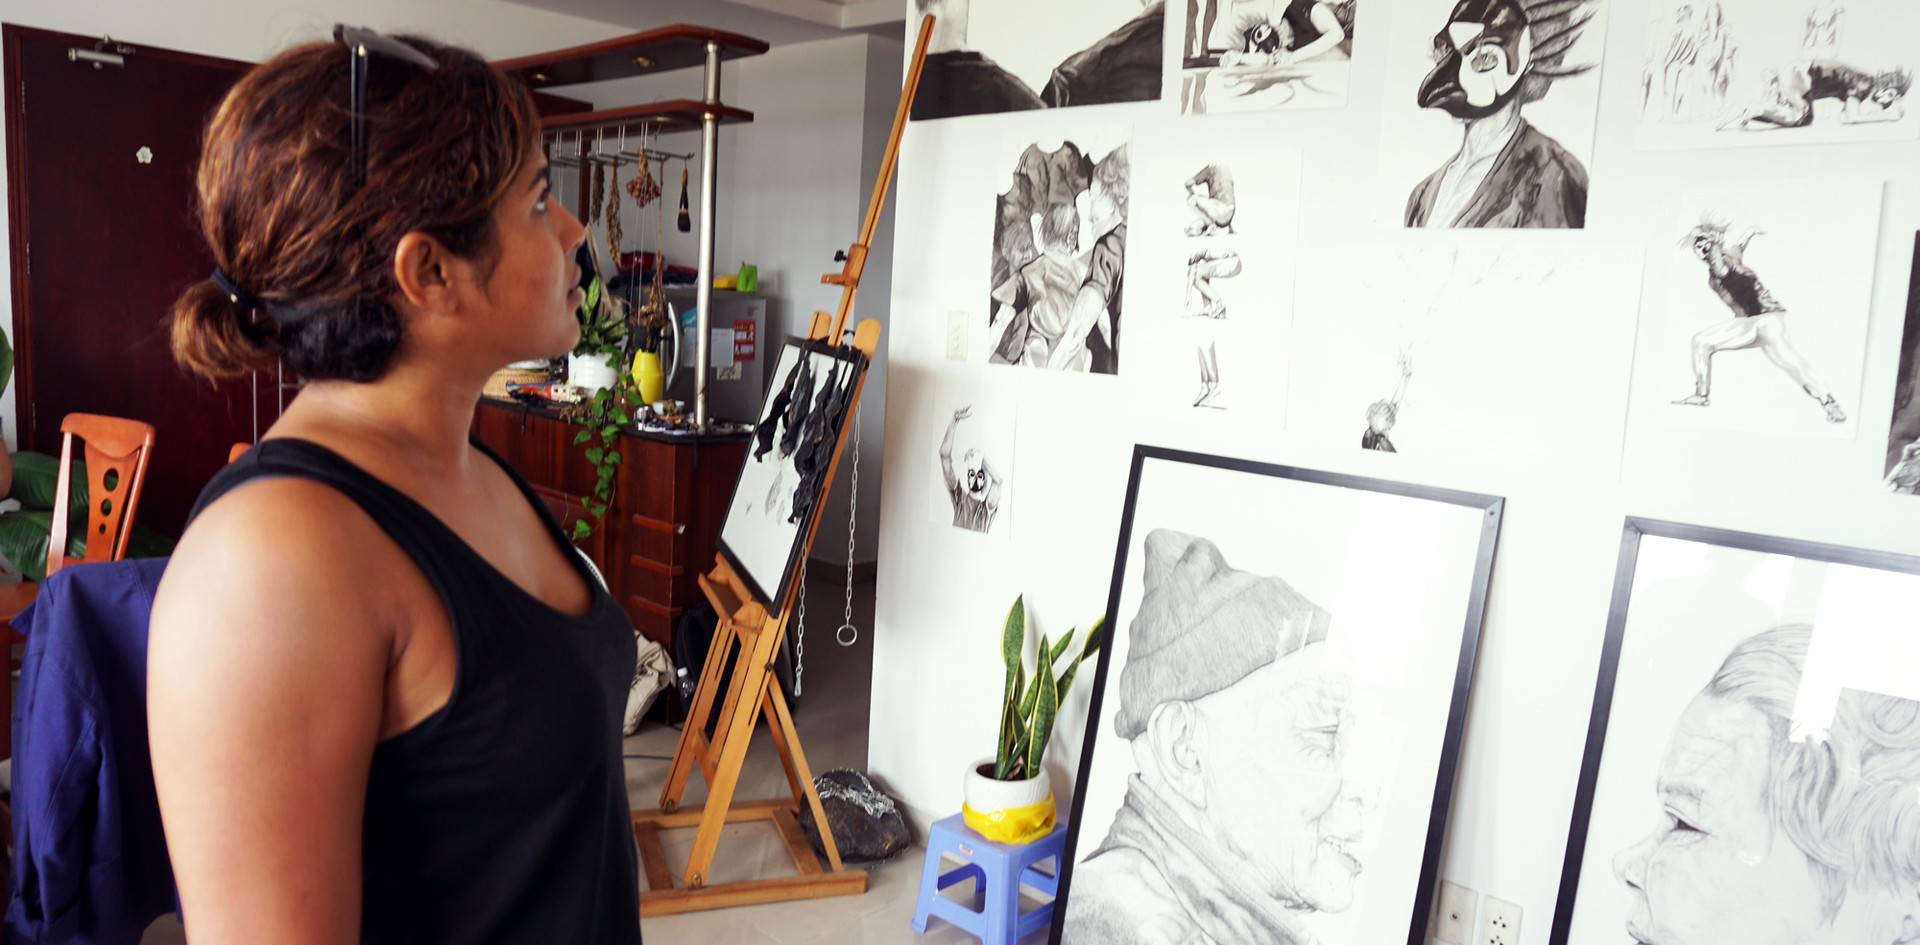 Guests exploring the intricate hand drawn art work.  Photo by: Linh Phan